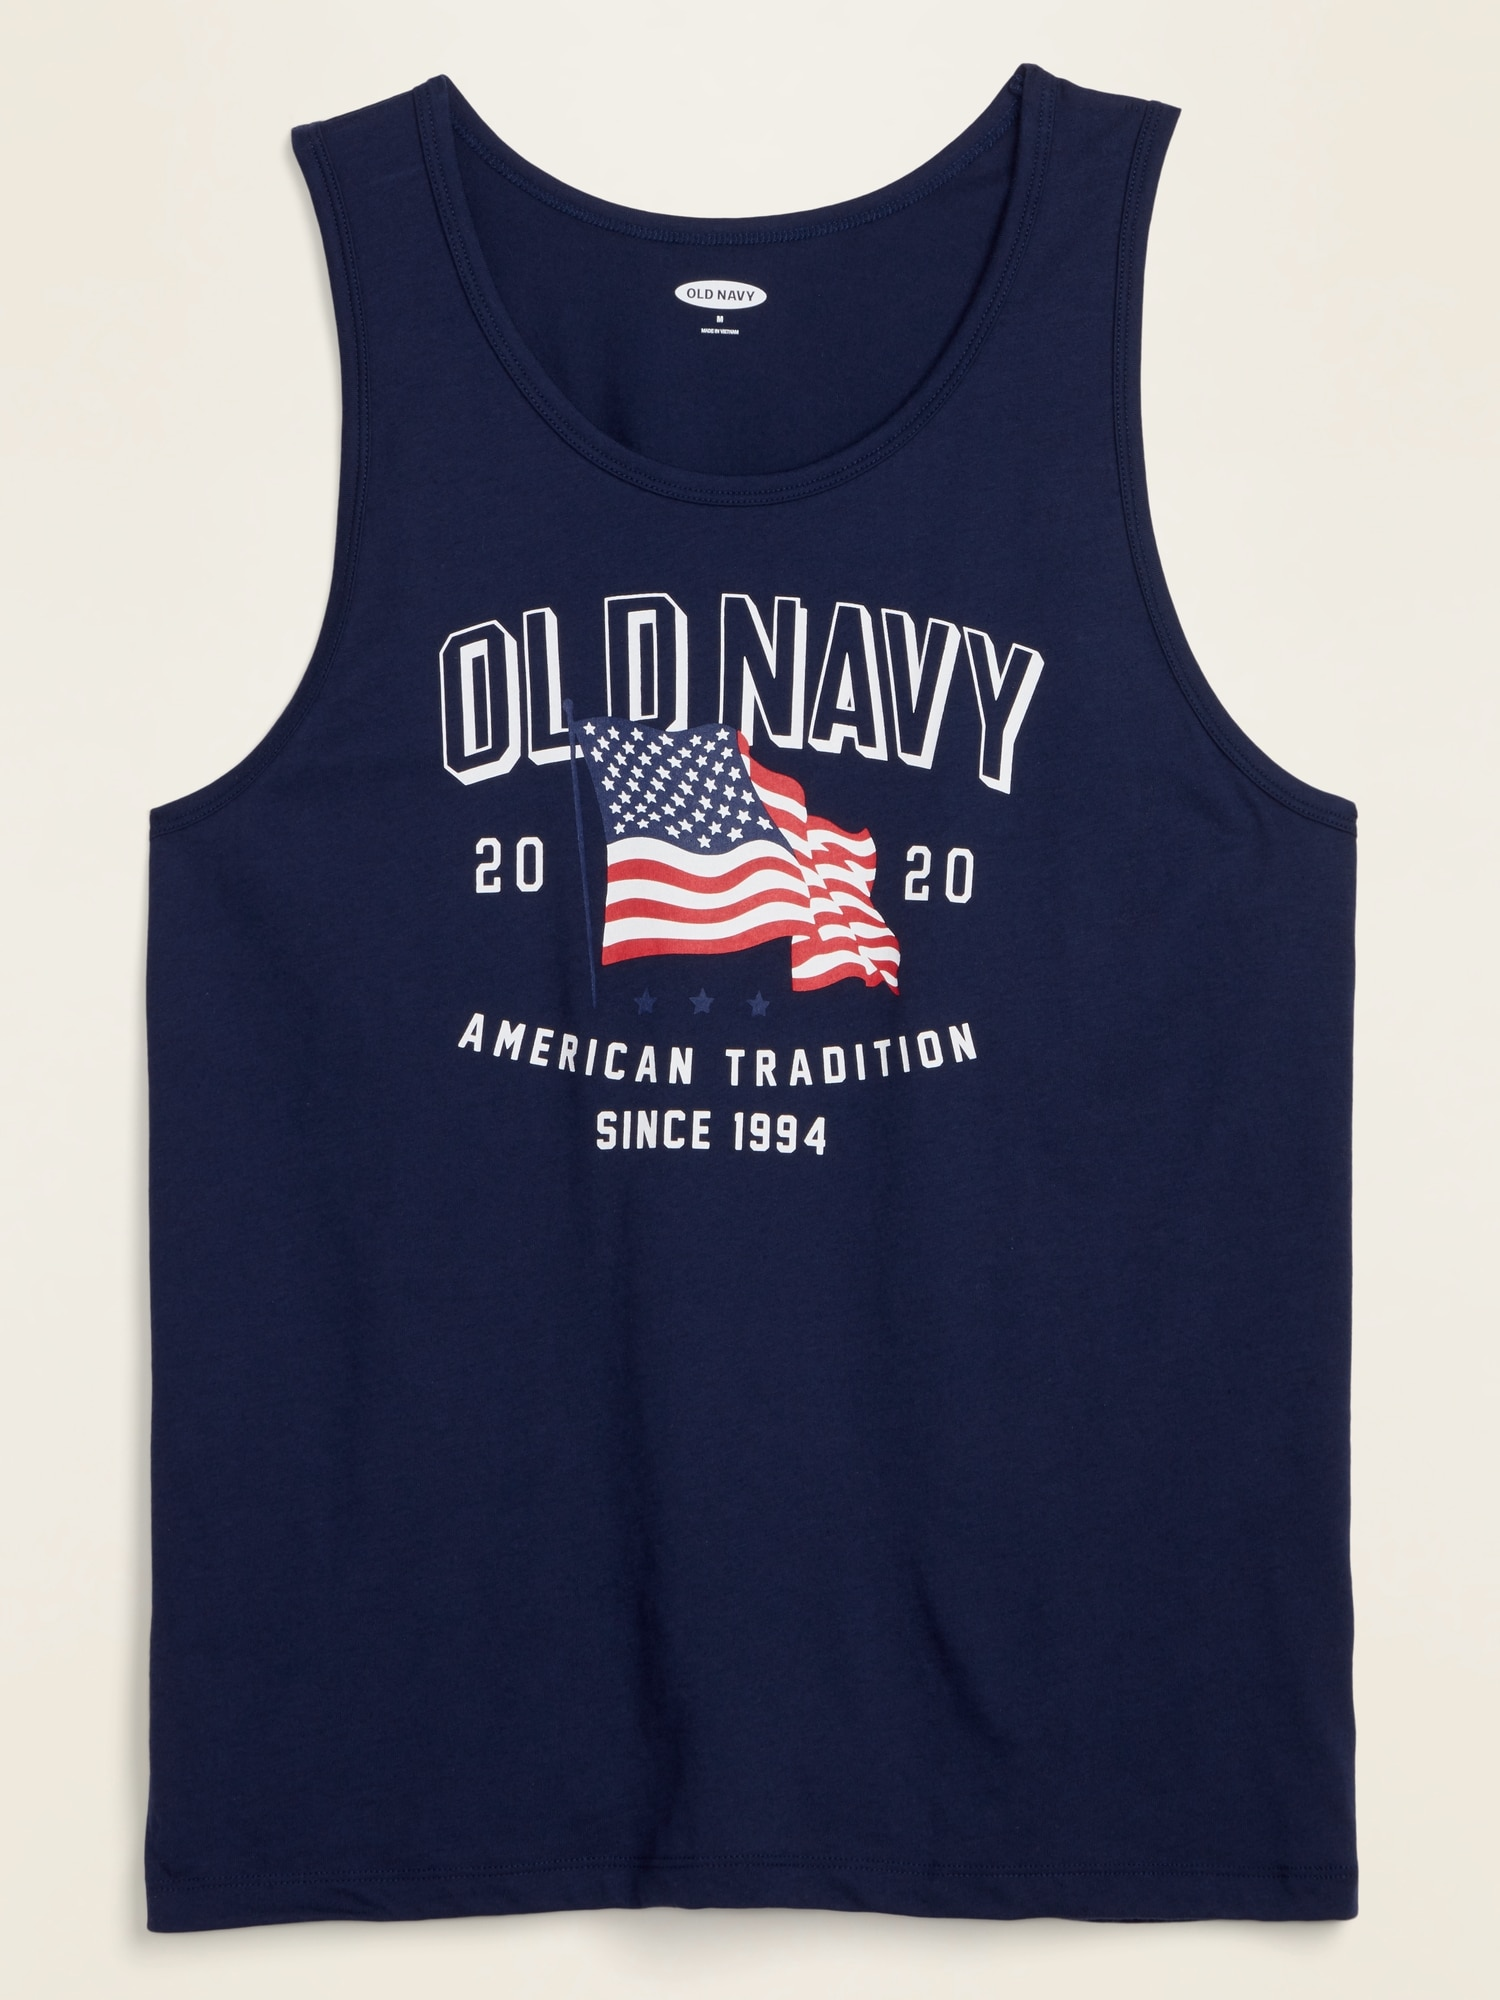 Old Navy Christmas Hours 2020 2020 U.S. Flag Tank Top for Men   Old Navy